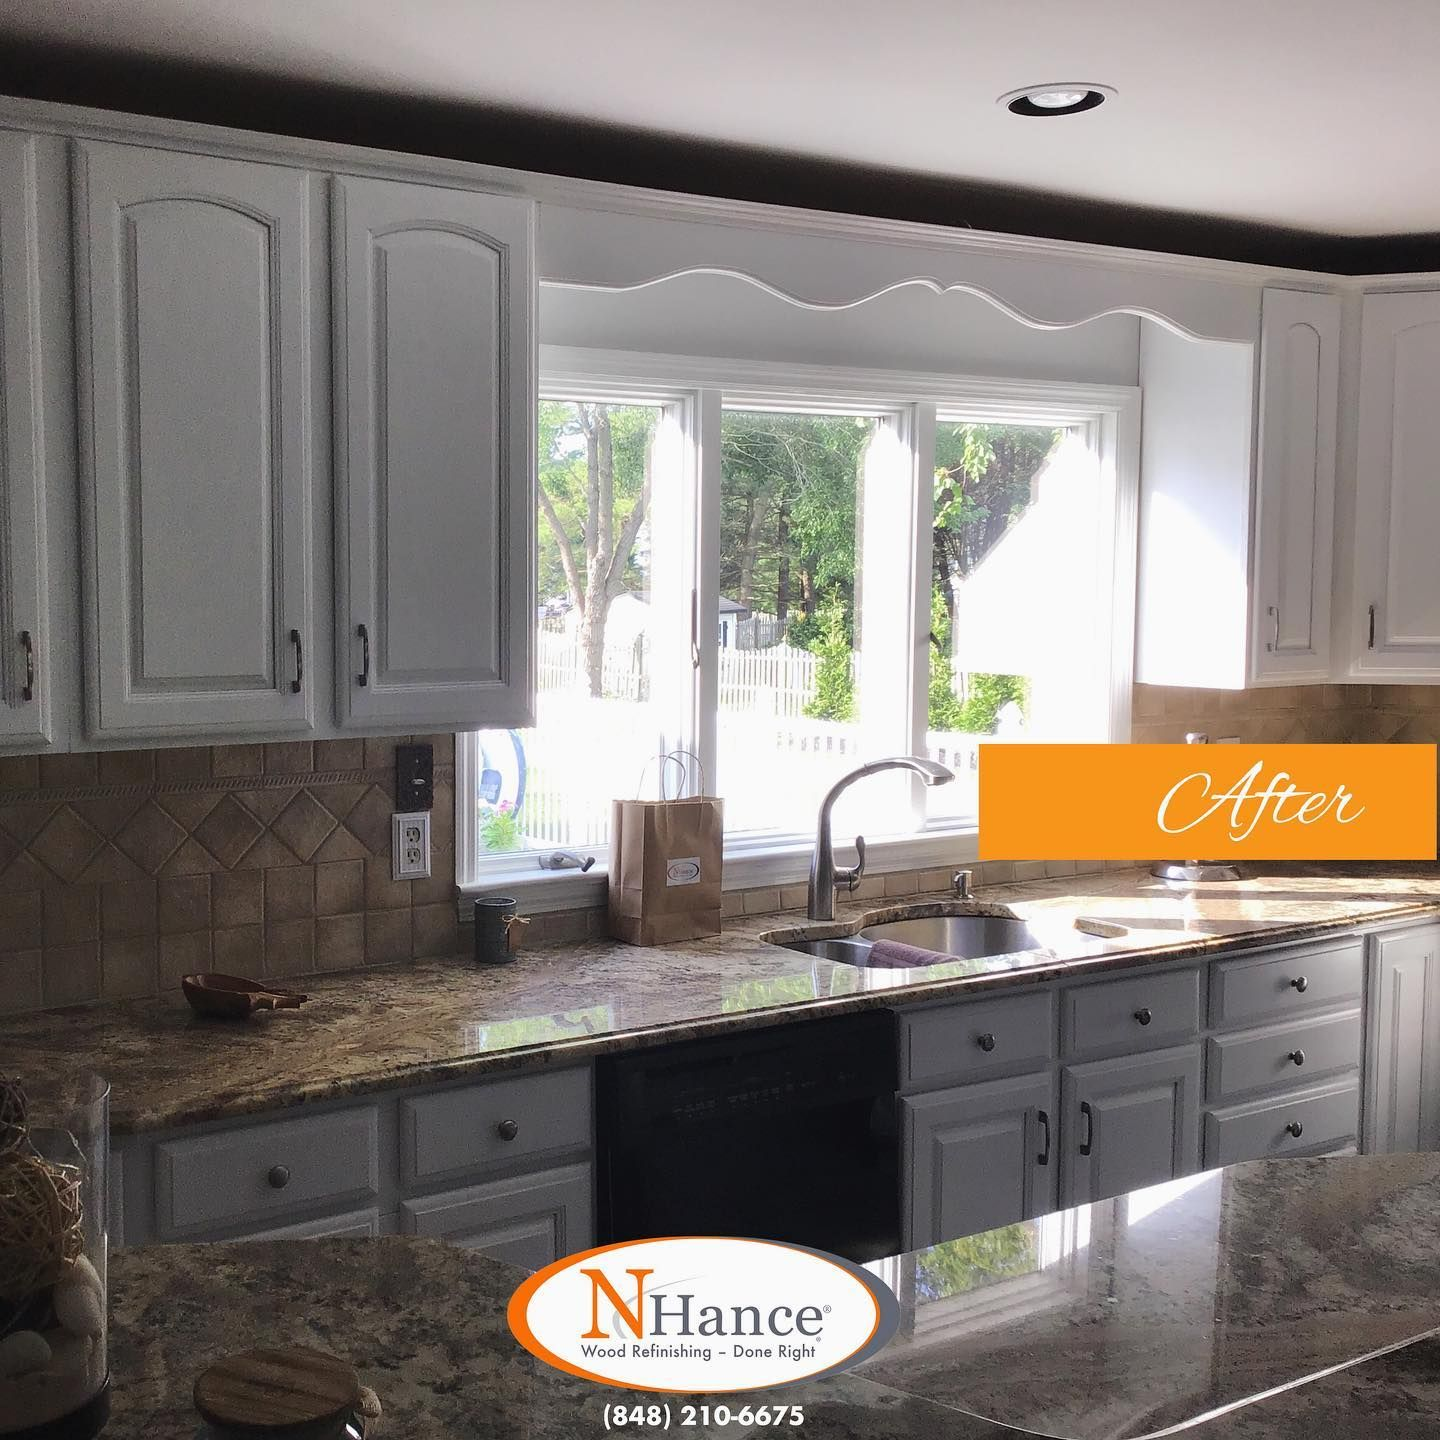 What A Transformation For This Redbanknj Kitchen The Oak Cabinets In This Kitchen Were No Longer Suitable For The Homeo In 2020 Kitchen Projects Oak Cabinets Cabinet